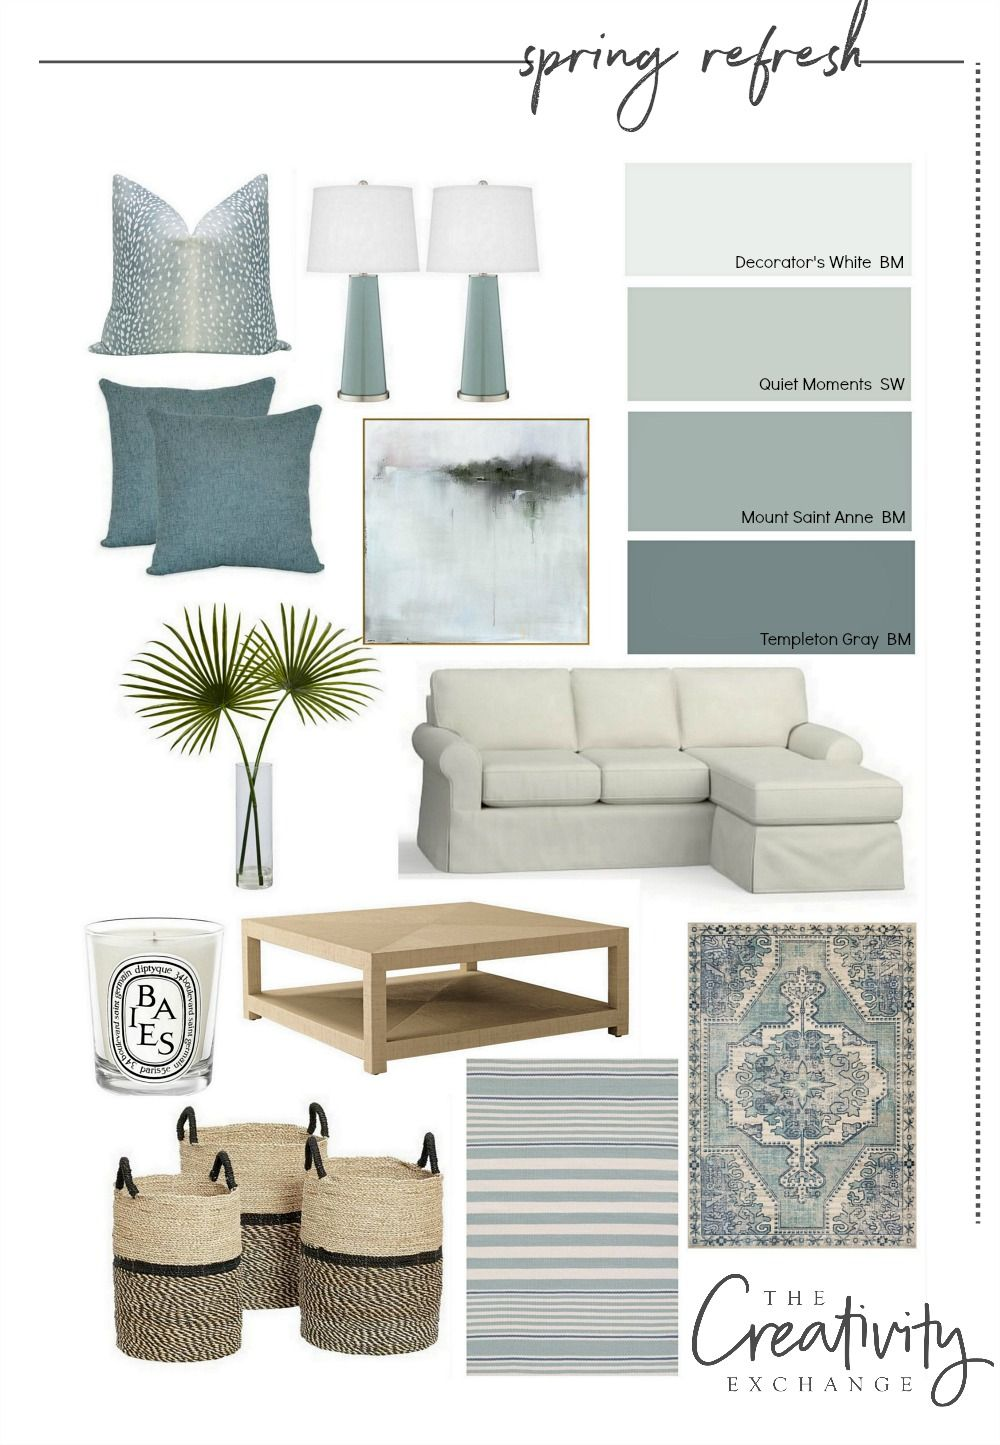 Easy Spring Refresh Ideas: Moody Monday